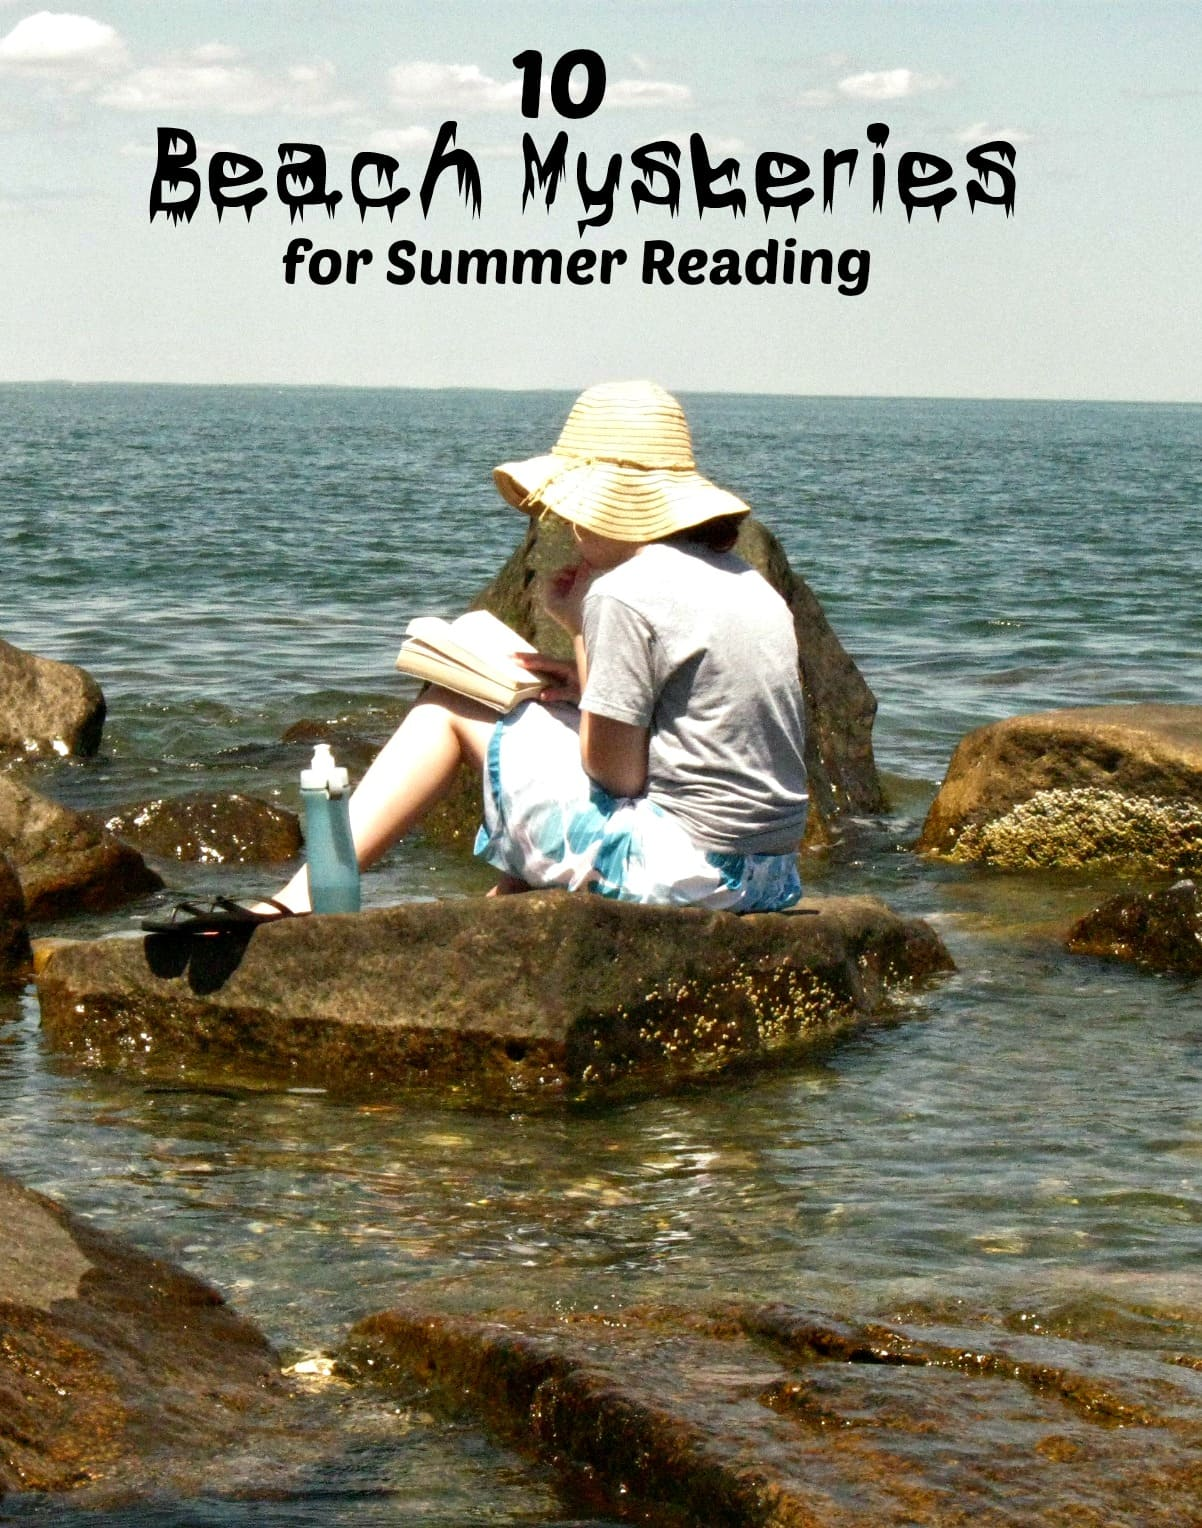 10 Beach Mysteries for Summer Reading - Enjoy a mystery on the beach this summer as you relax in the sun and sand